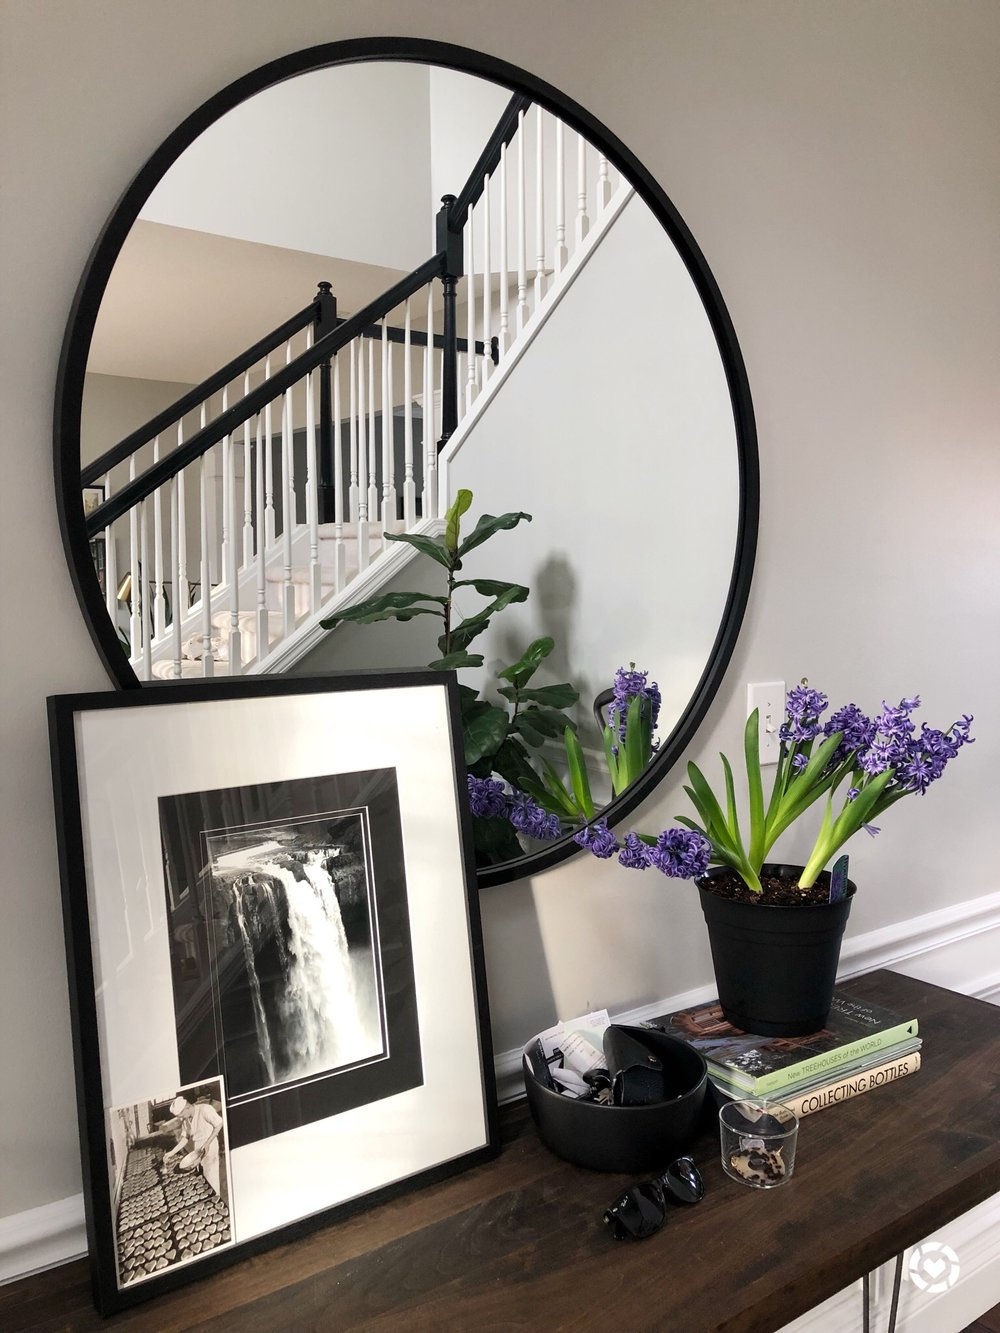 A Spring Refresh for the House